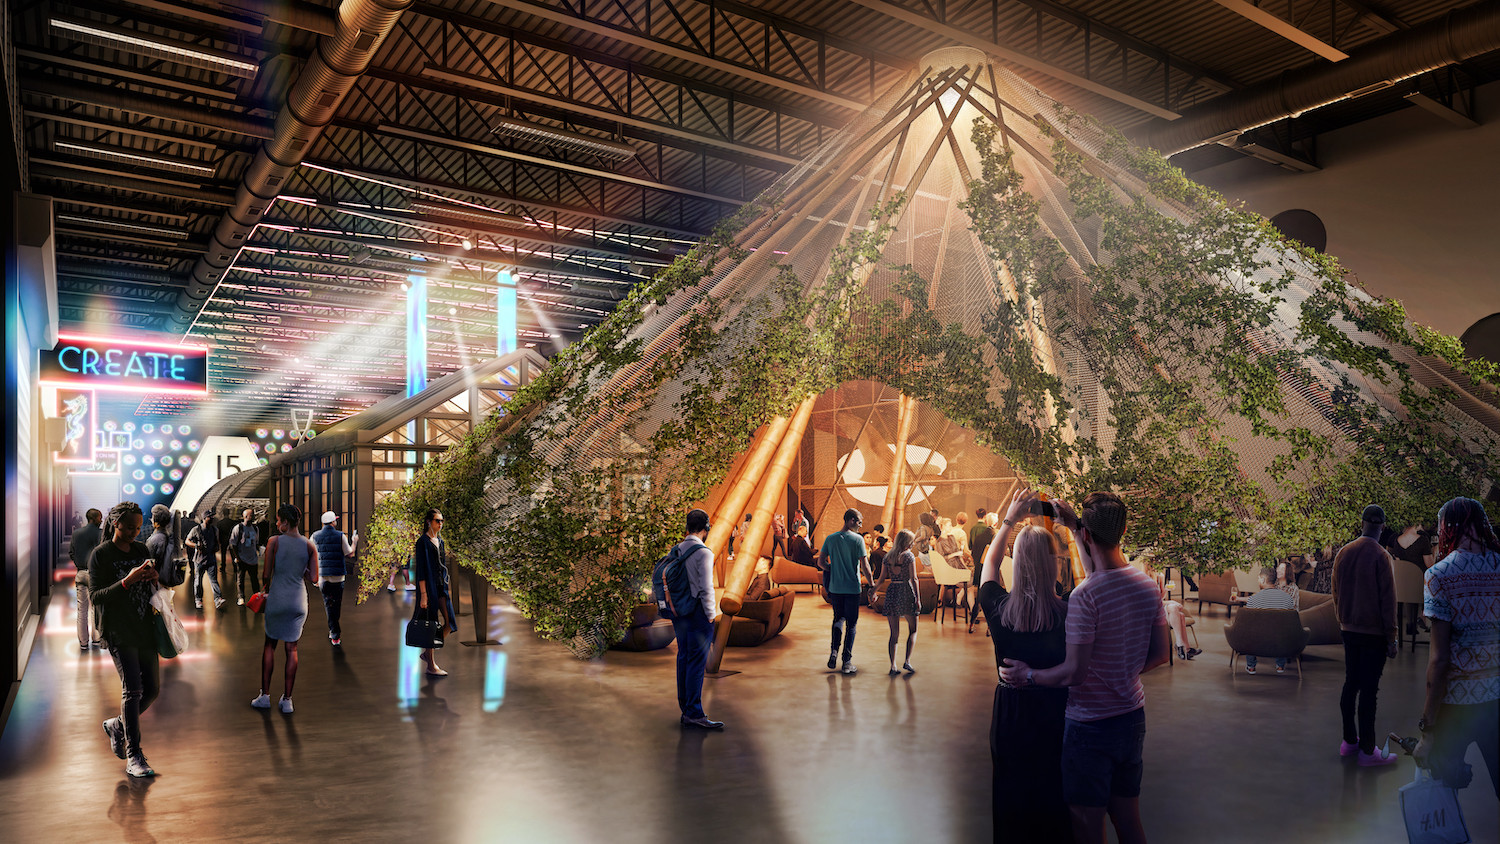 Sanctuary, an intimate event space constructed of bamboo sourced from Bali. (Design + Distill)